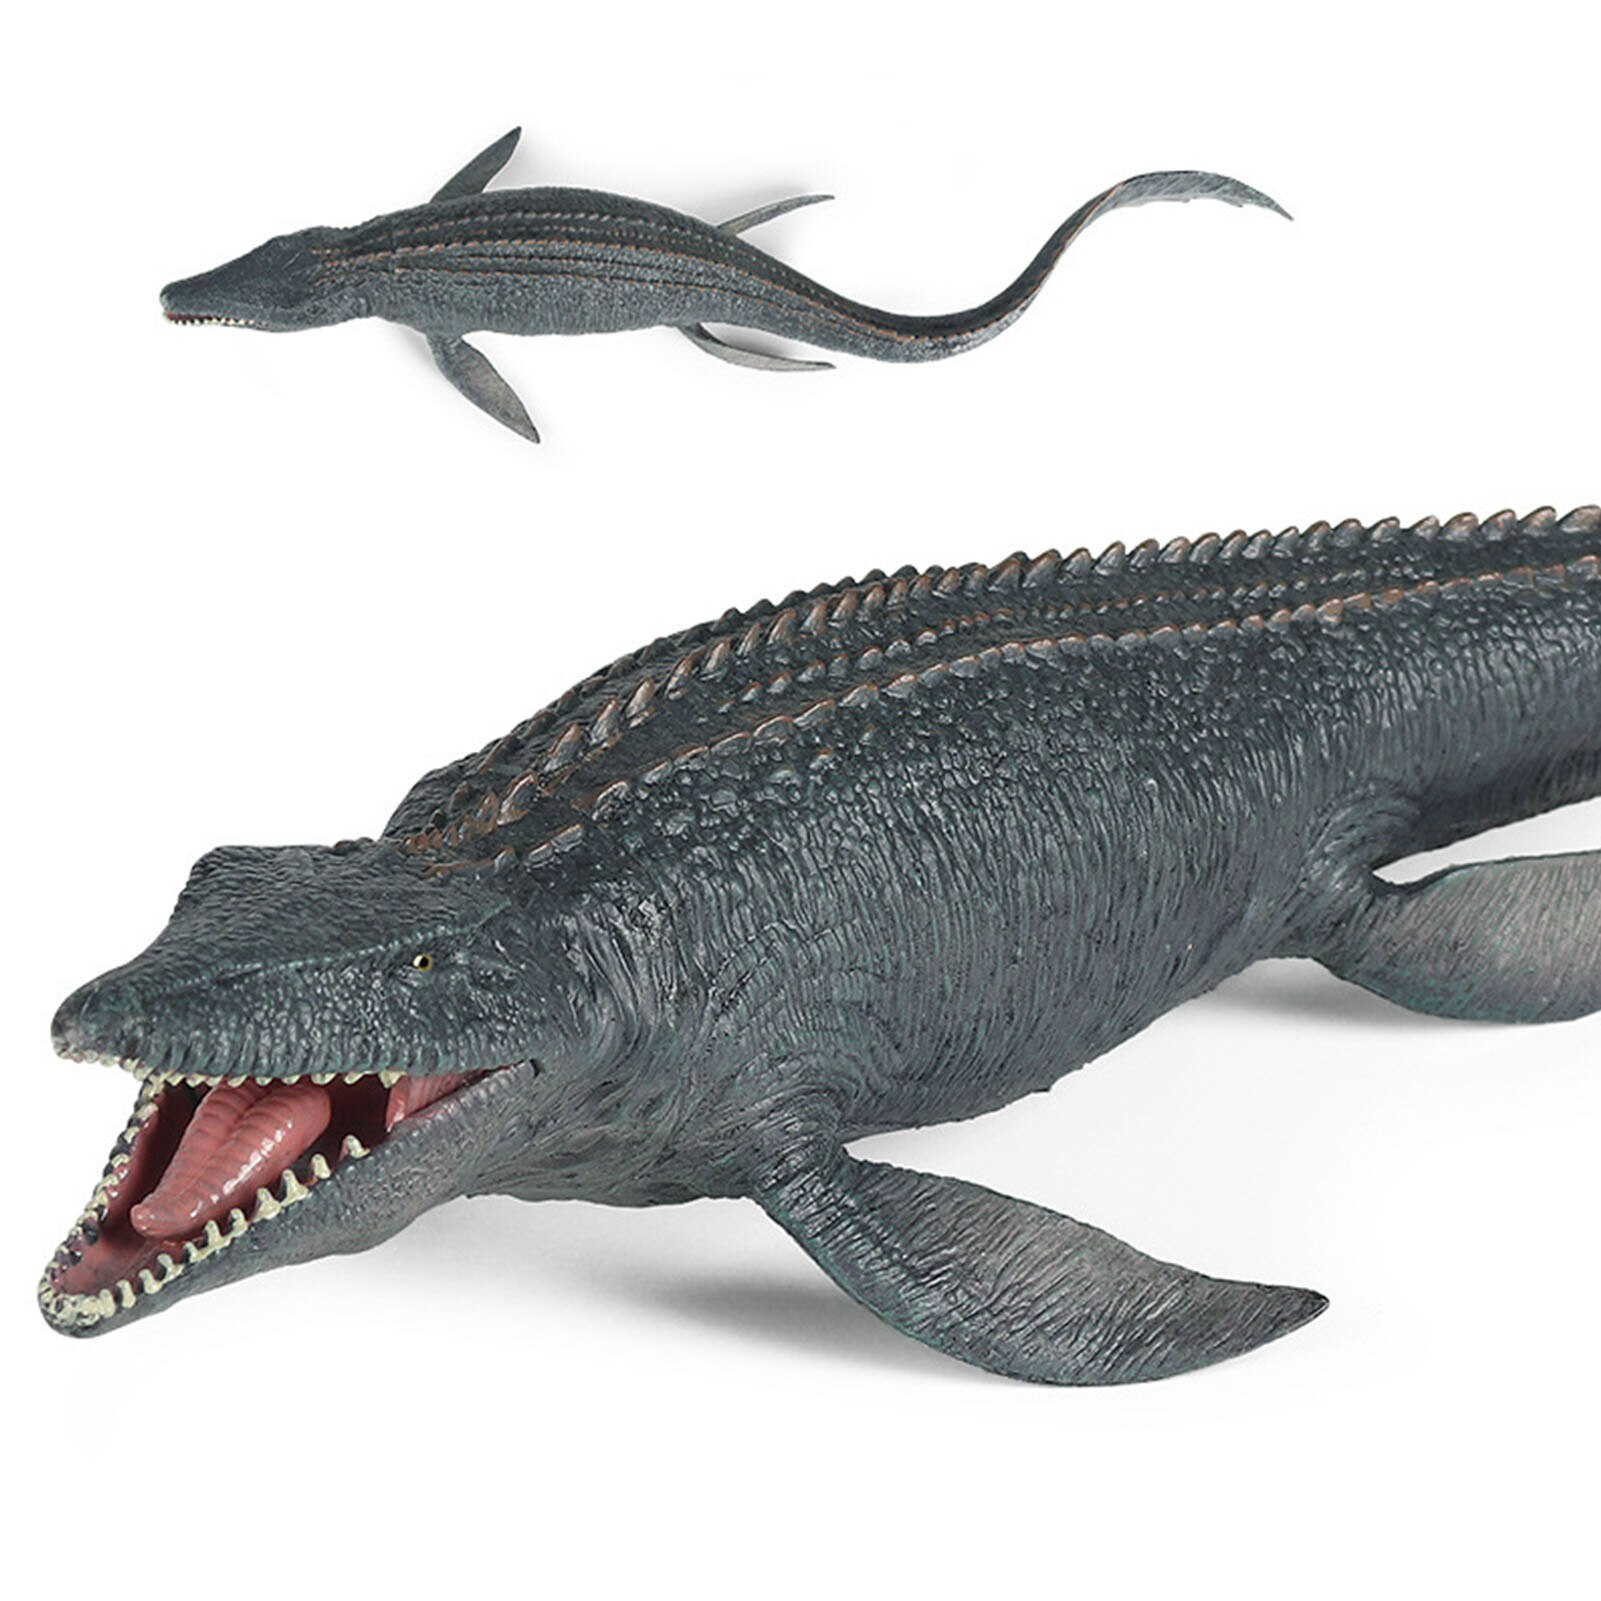 1pc Mosasaurus Dinosaur Figure Plastic Realistic Ocean Animal Model Washable Dino Toys For Boys Children Home Decoration lifelike dinosaur model static solid mosasaurus dinosaur realistic figures perfect toys decoration for party favor kid toy gift